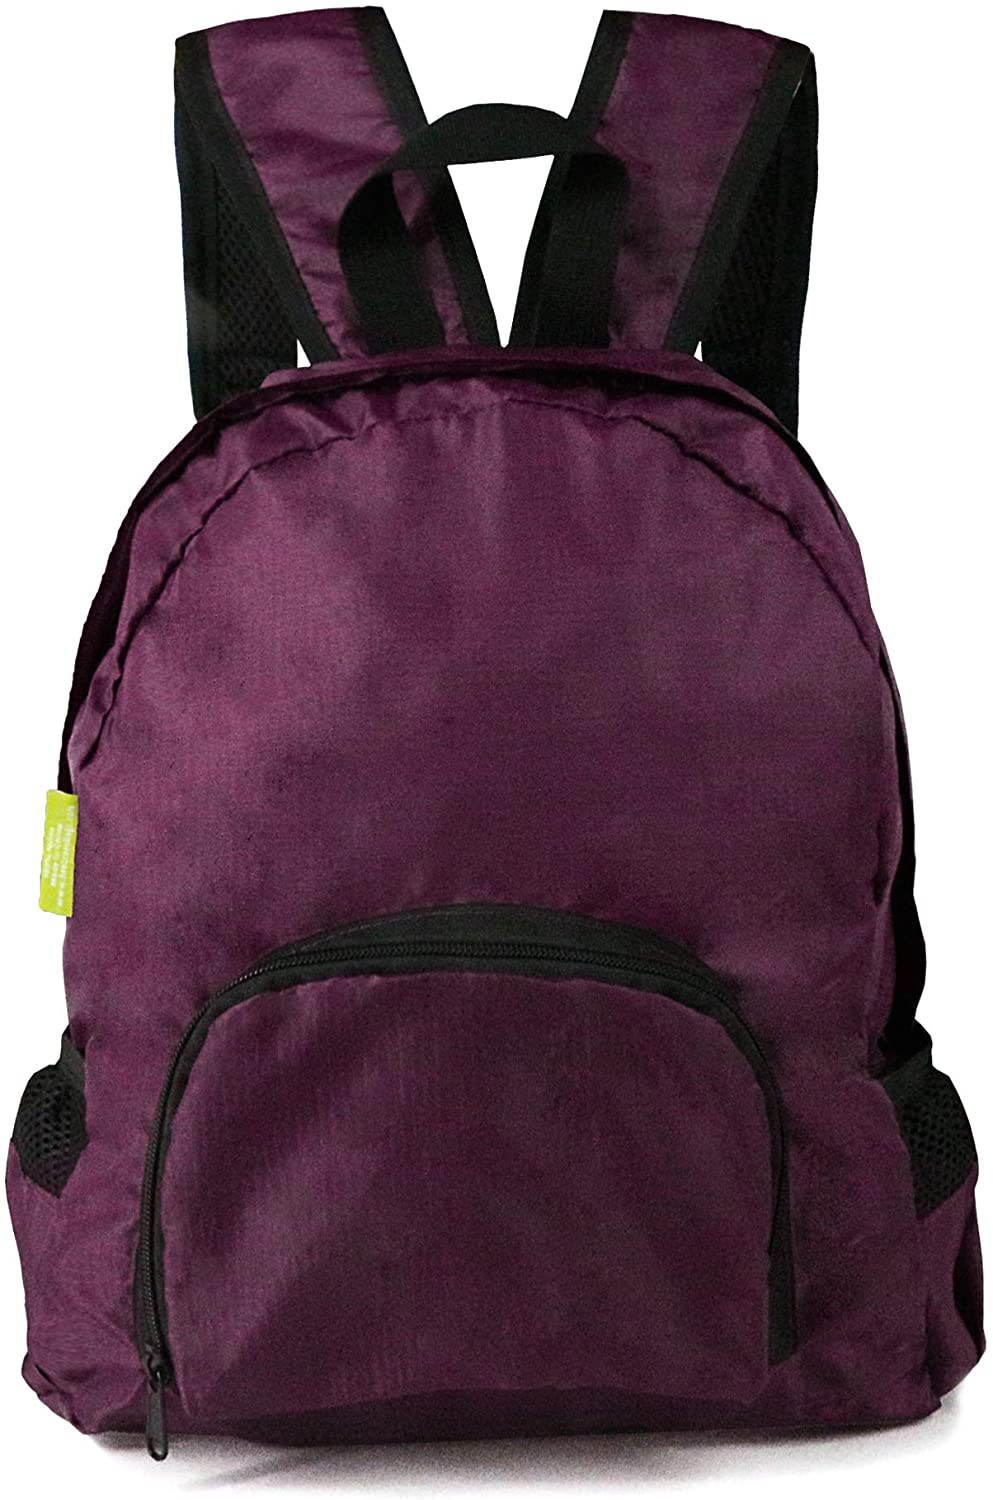 BeeGreen Foldable Hiking Daypack with Front Zipper Pocket Lightweight Packable Backpack Water Resistant Sturdy for Men & Women Burgundy